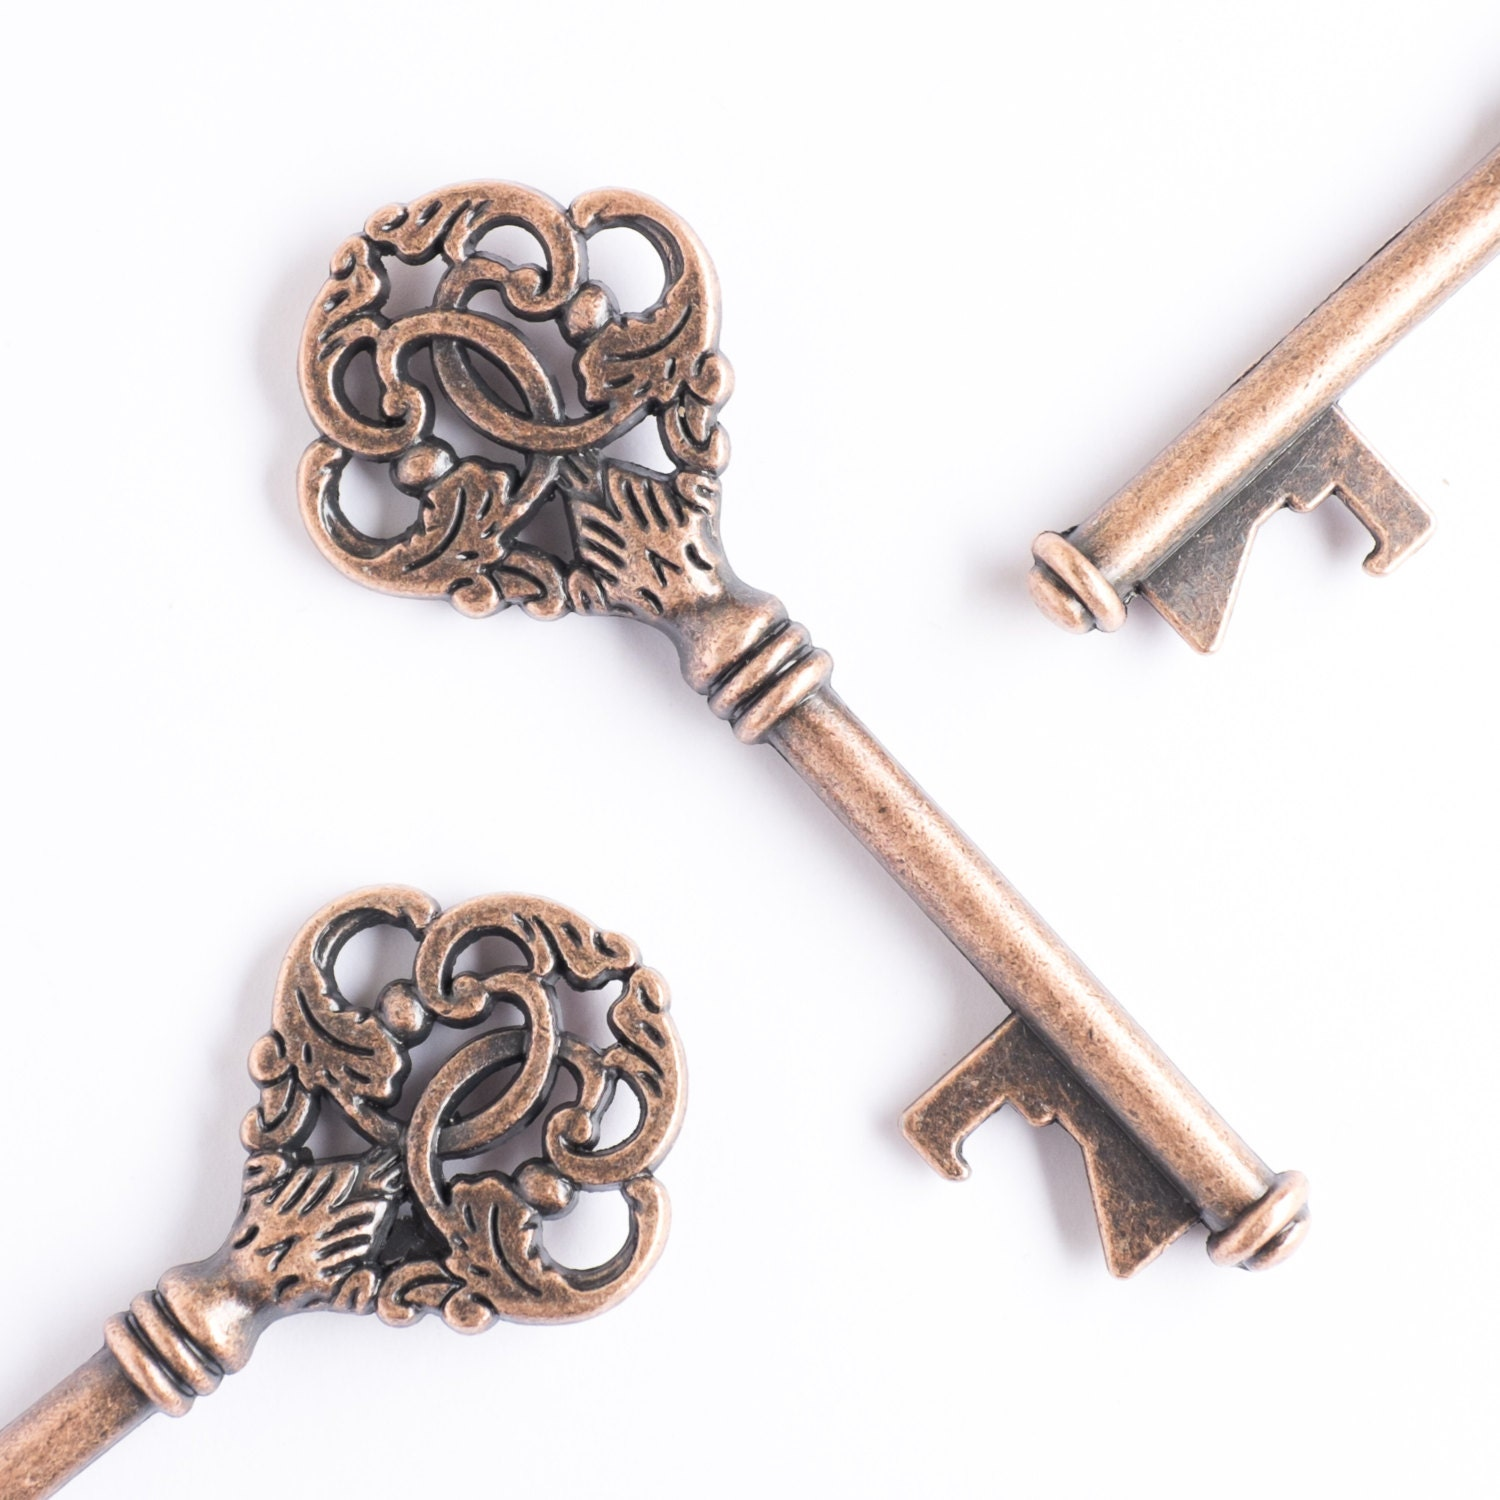 50 vintage skeleton key bottle openers wedding decorations. Black Bedroom Furniture Sets. Home Design Ideas